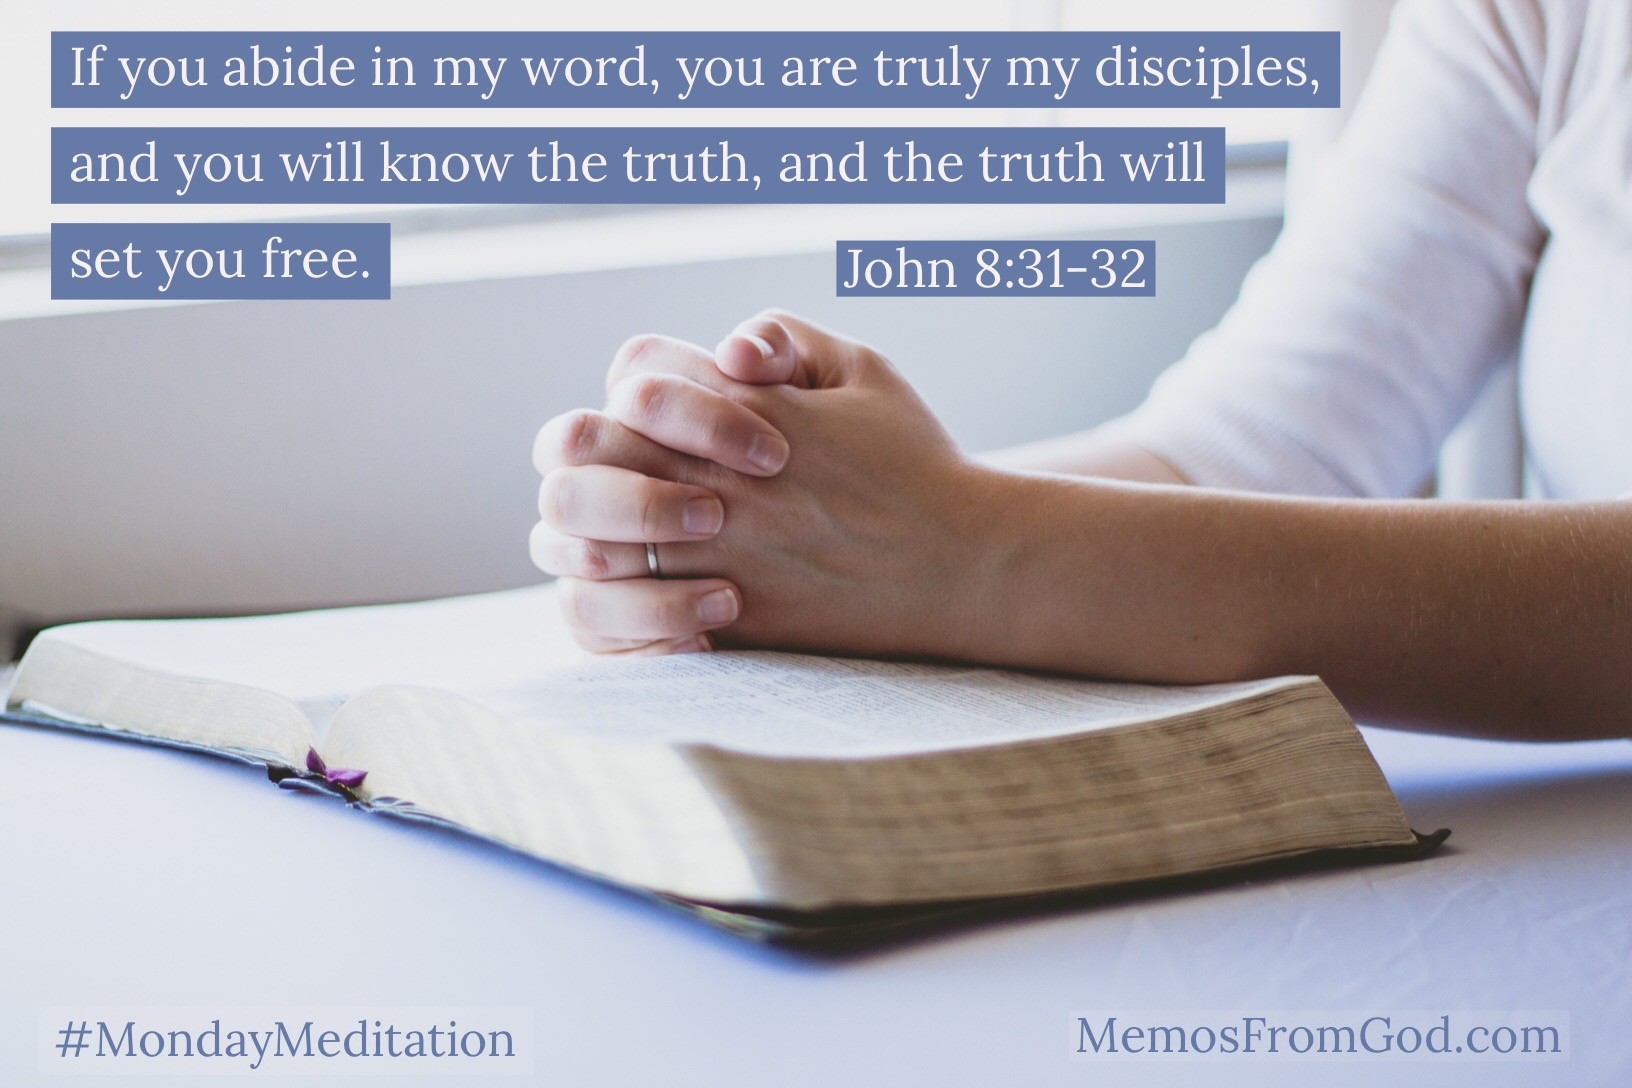 If you abide in my word, you are truly my disciples, and you will know the truth, and the truth will set you free. John 8:31-32